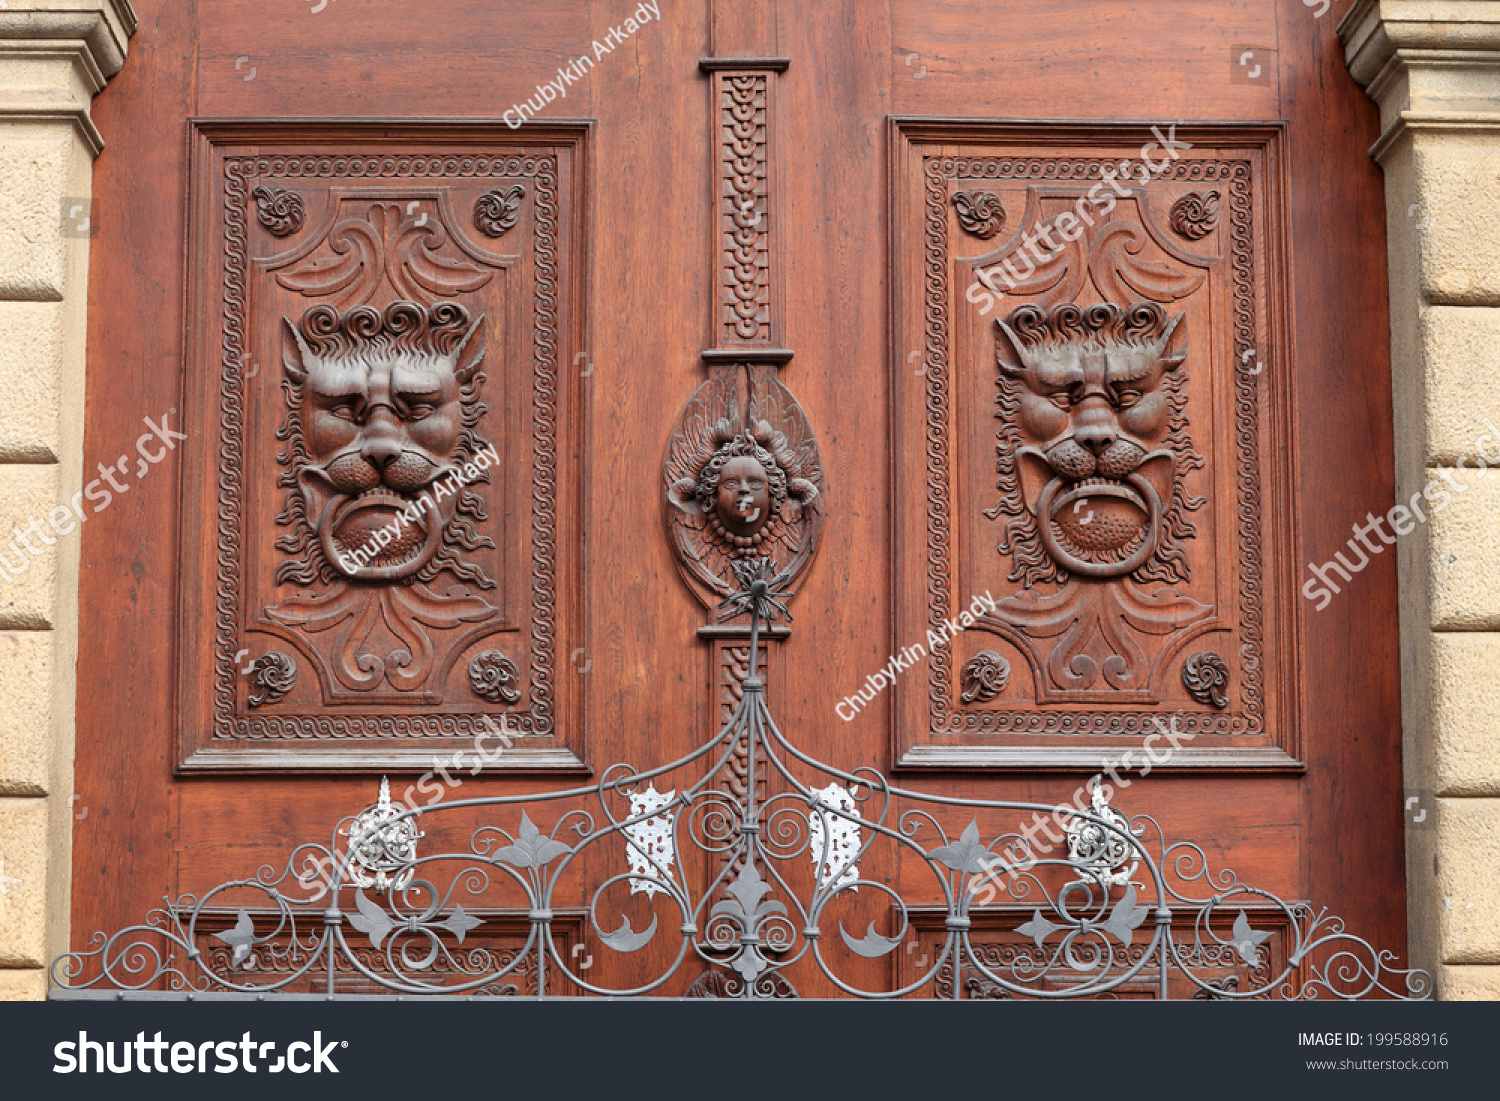 Old wooden door with heads of lions prague czech for Door z prague